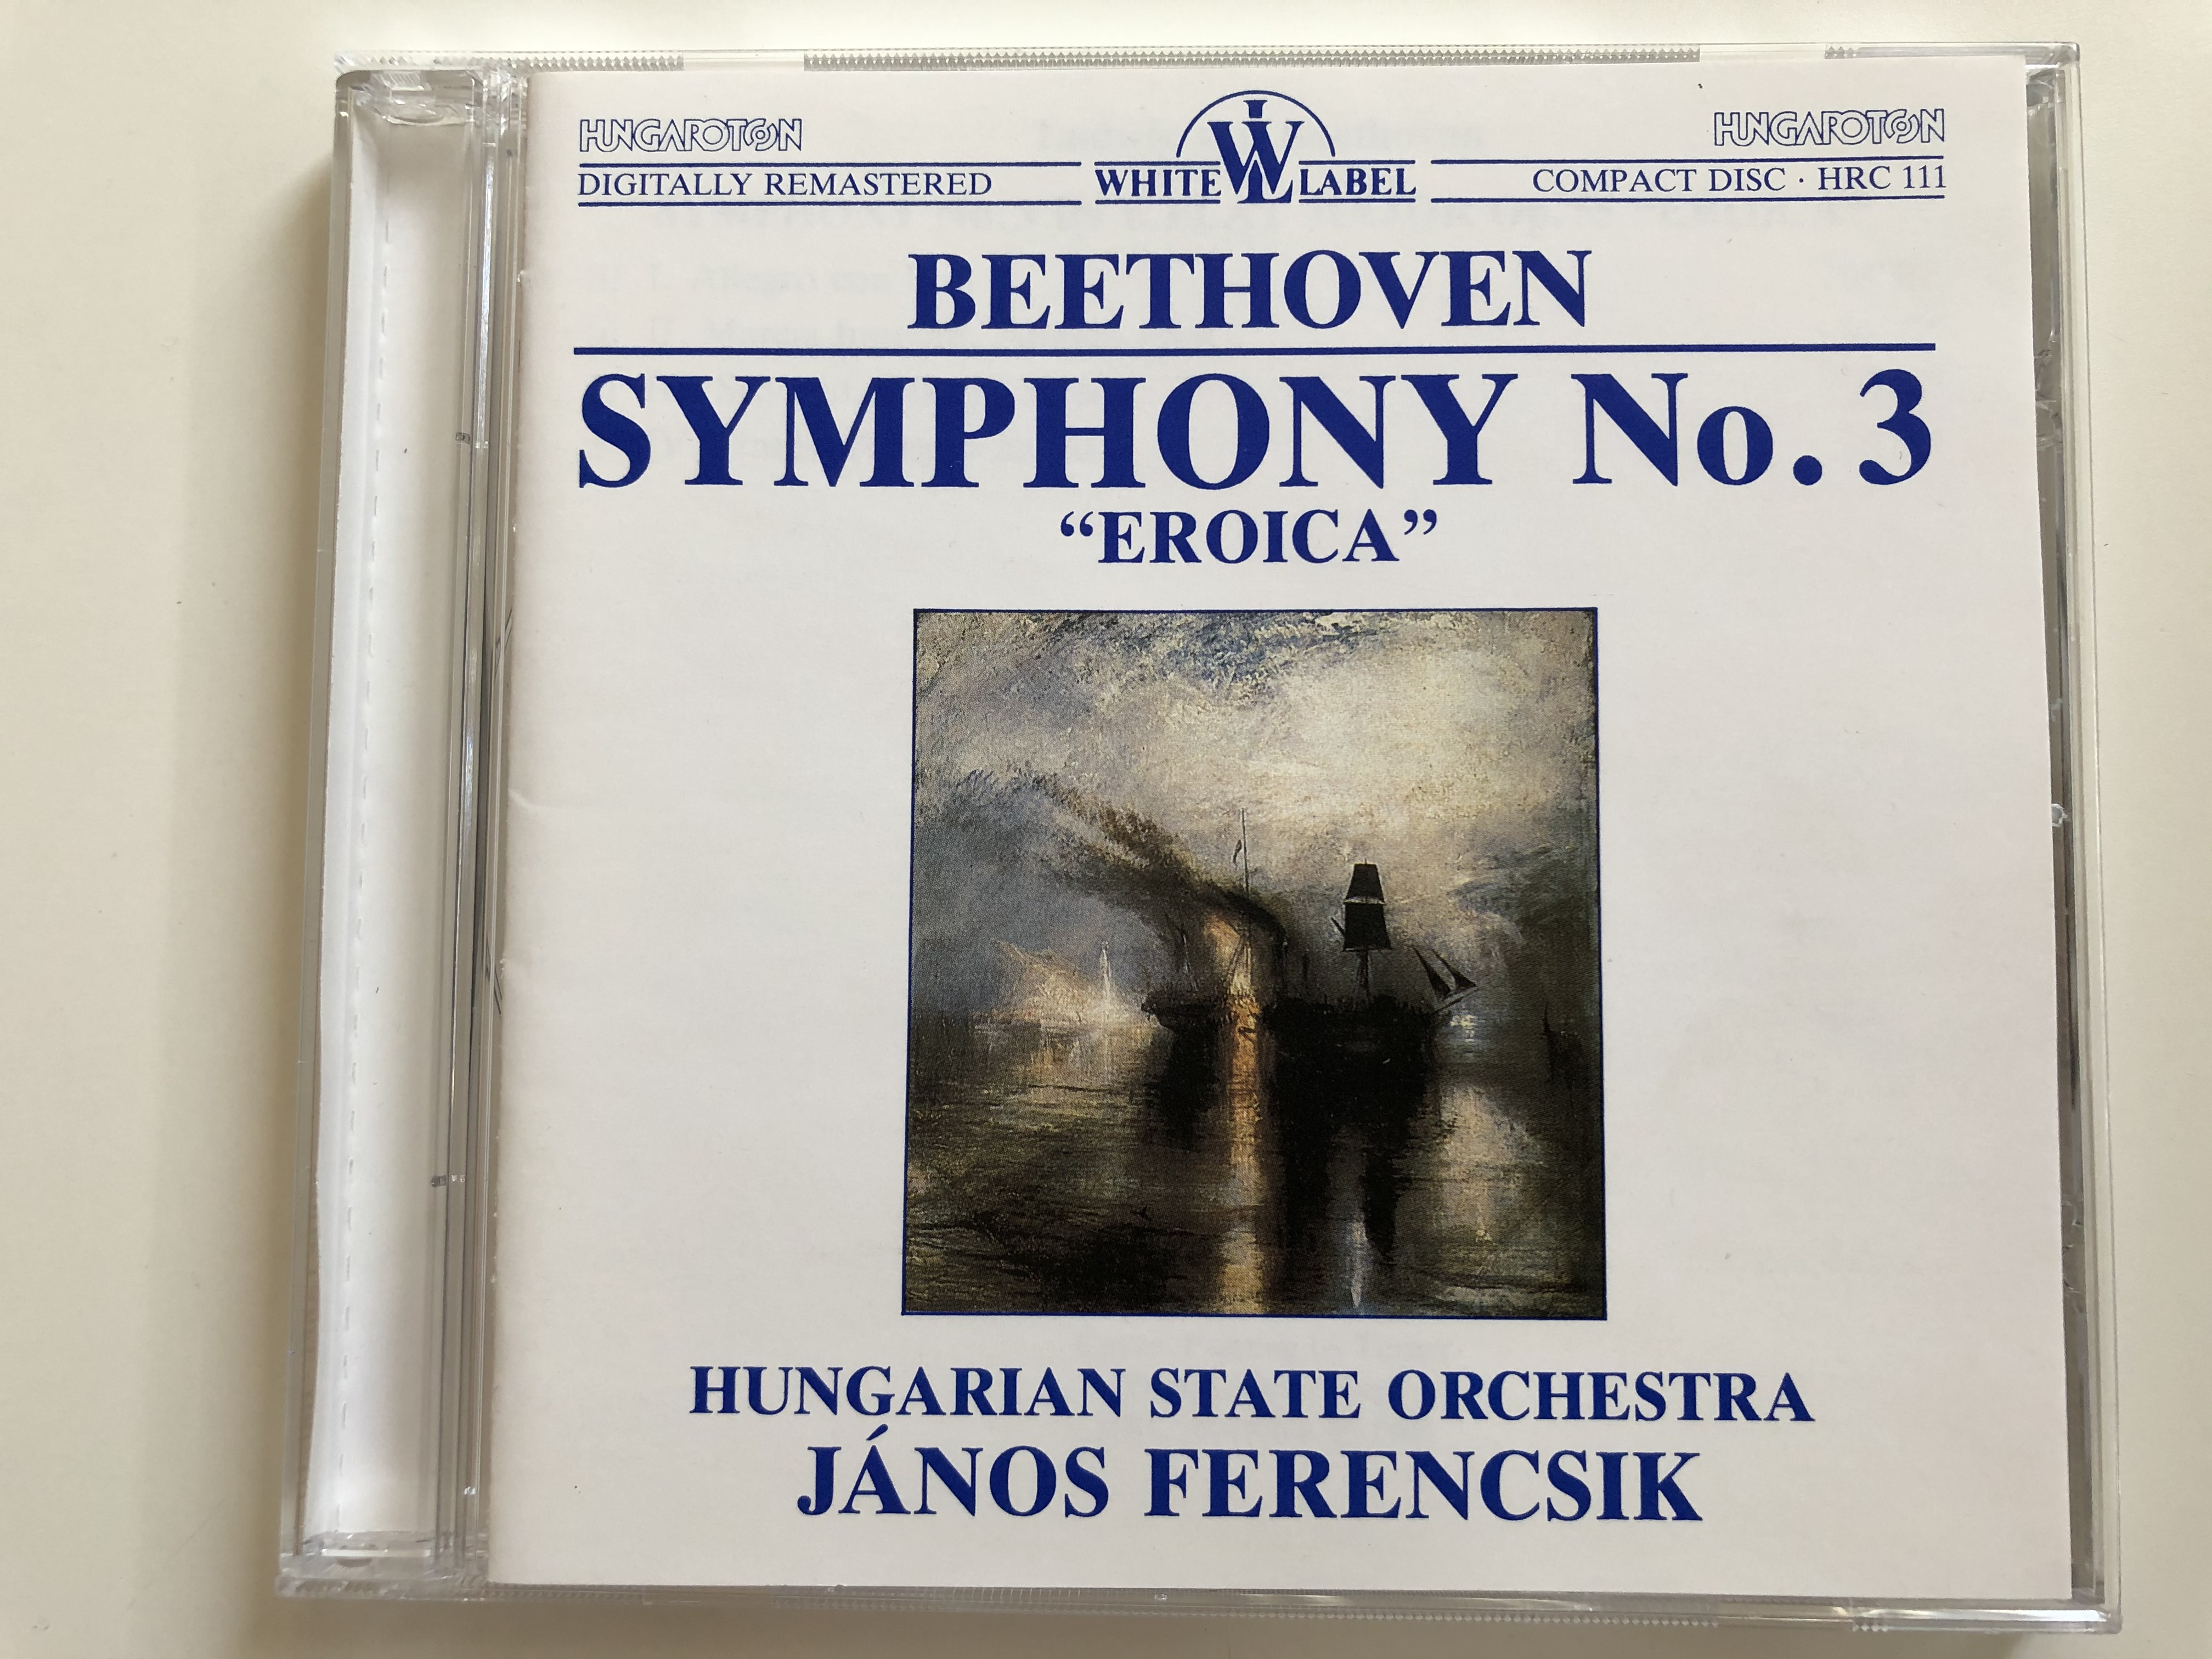 beethoven-symphony-no.-3-eroica-hungarian-state-orchestra-janos-ferencsik-white-label-audio-cd-1988-stereo-hrc-111-1-.jpg